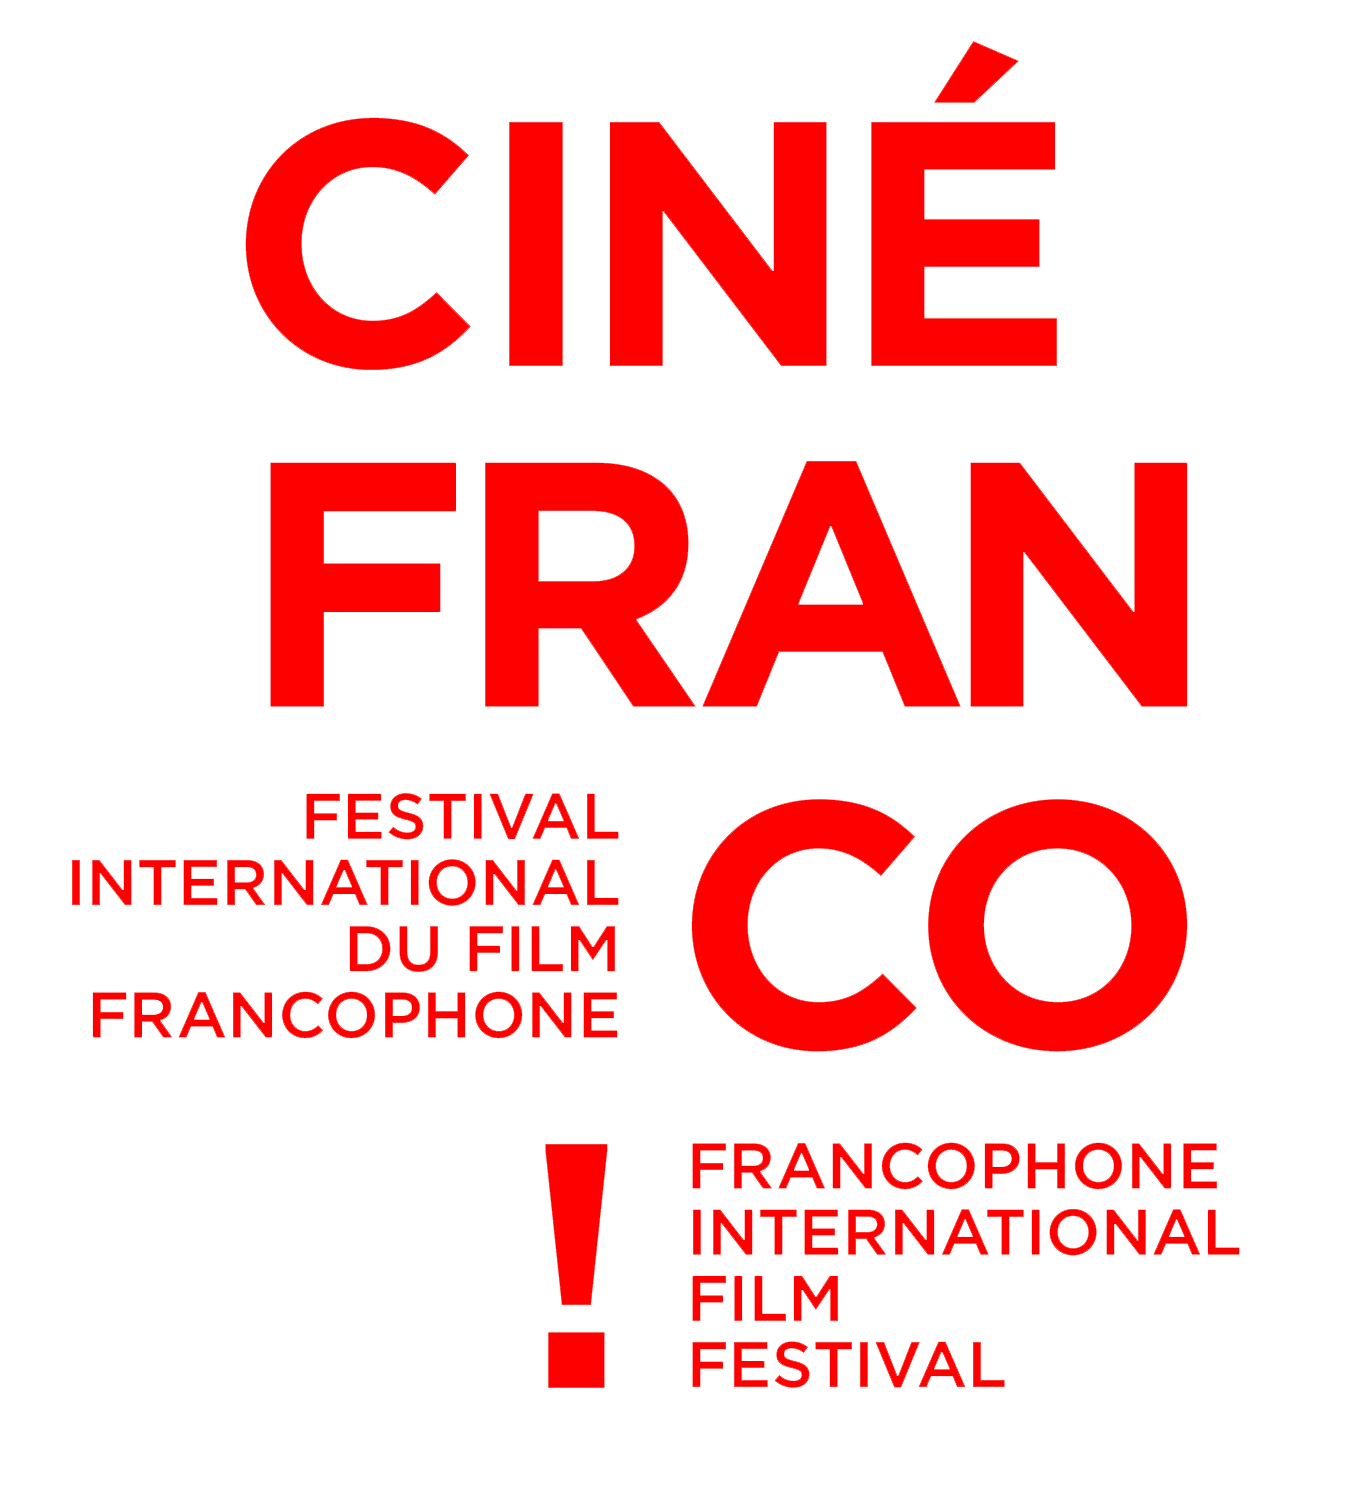 """Cinefranco""/"